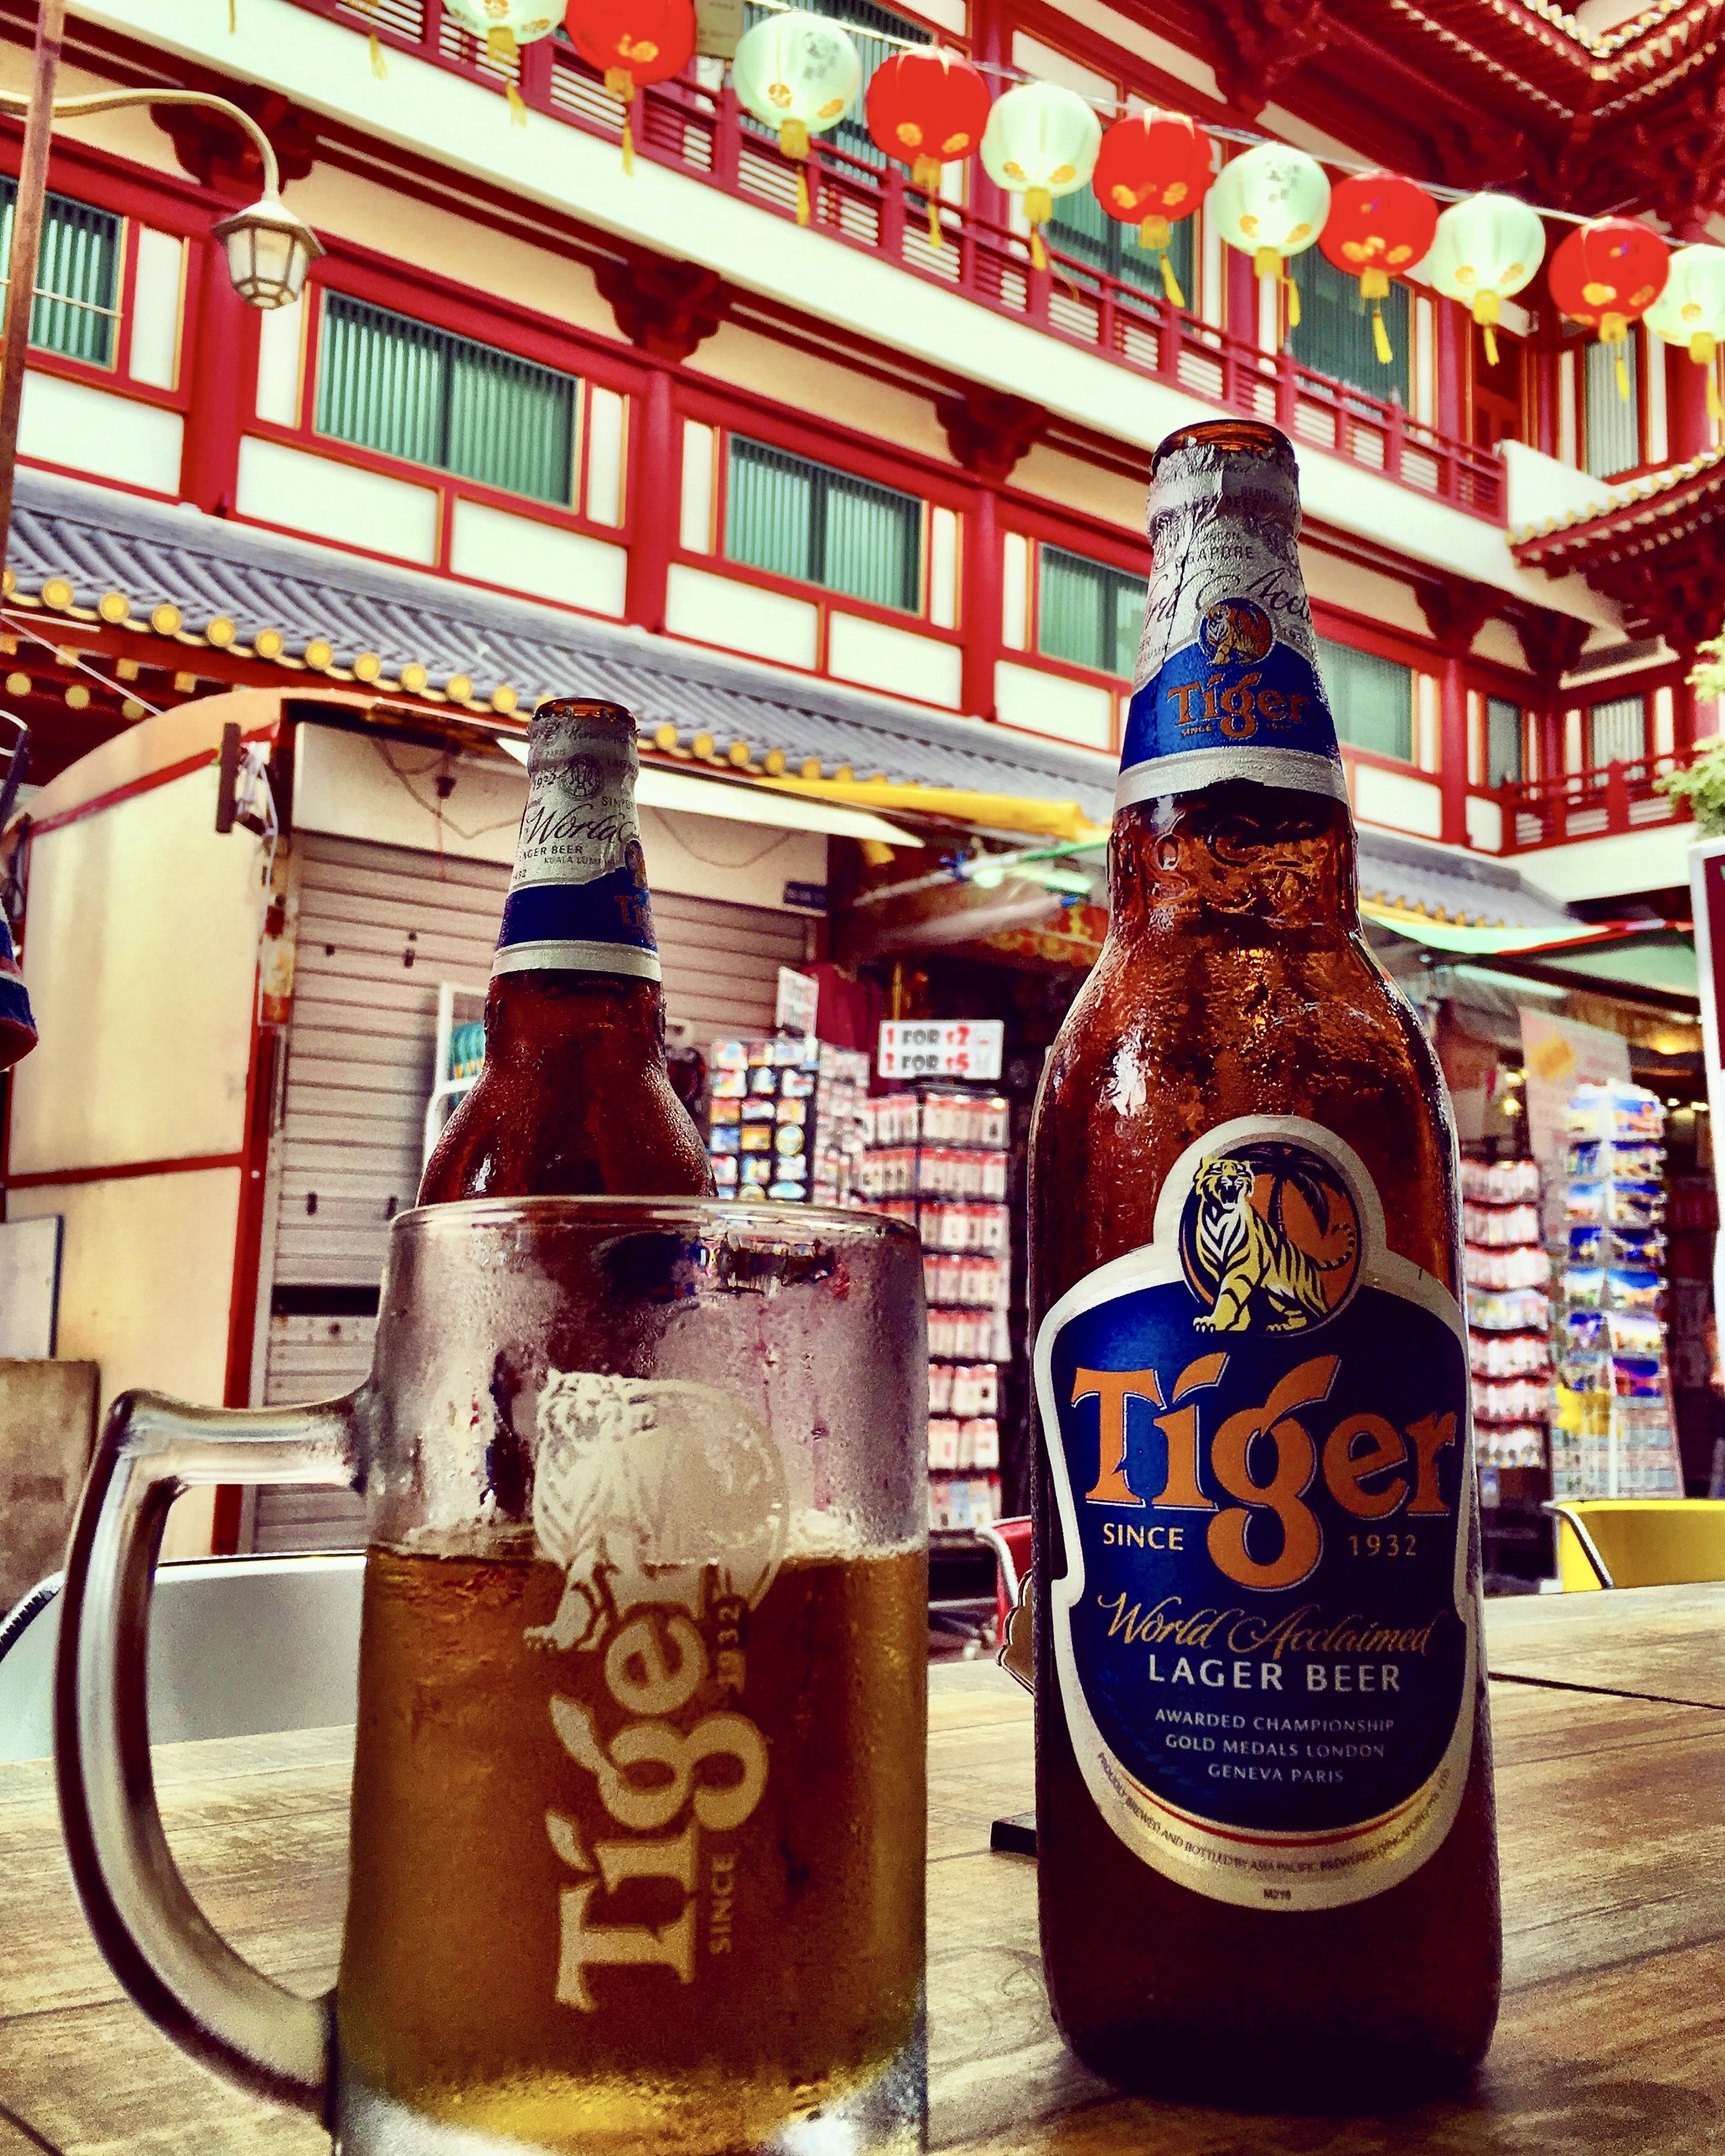 Tiger beers Chinatown